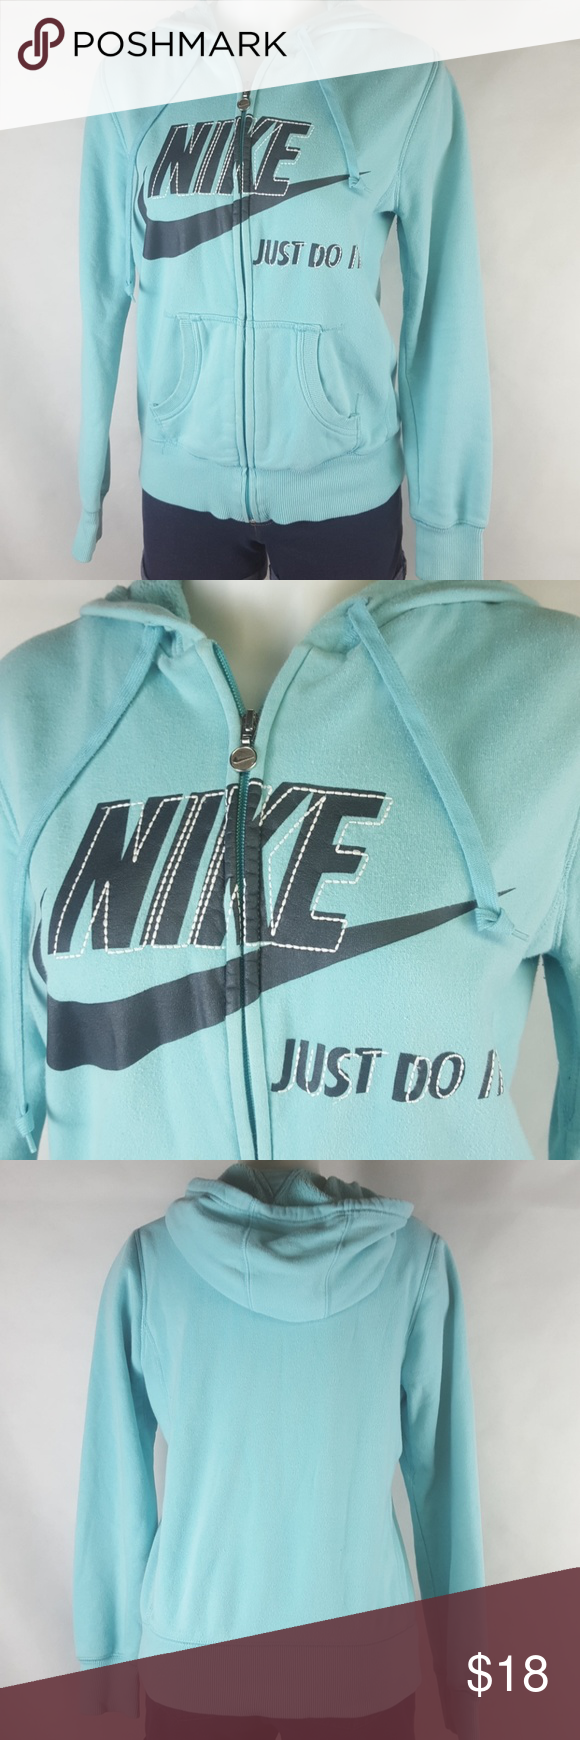 Nike Sportswear Medium 8 10 Sweatshirt Hoodie Beautiful Graphics And Embroidery Color Is A Unique Aqua Drawsti Sweatshirts Hoodie Nike Sportswear Sweatshirts [ 1740 x 580 Pixel ]